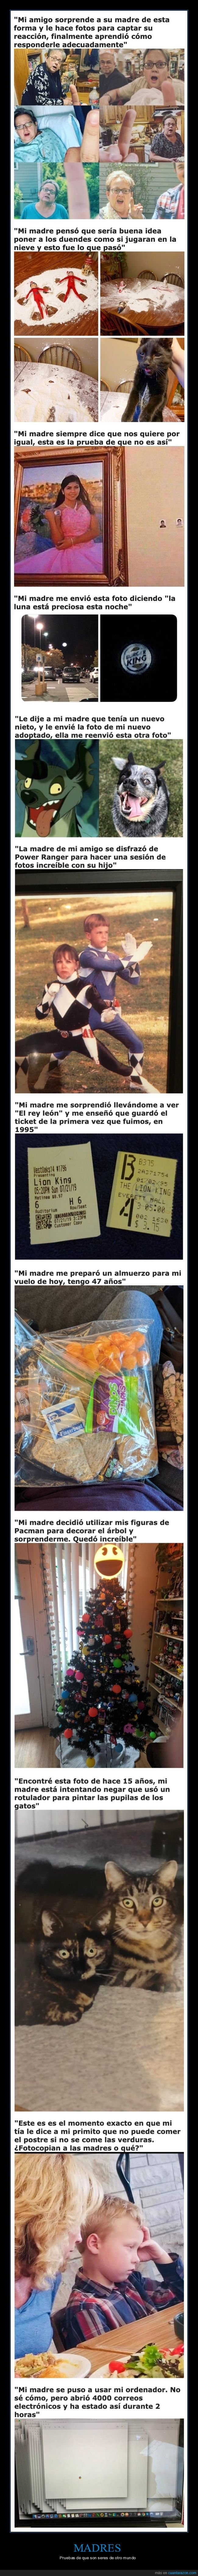 madres,wtf